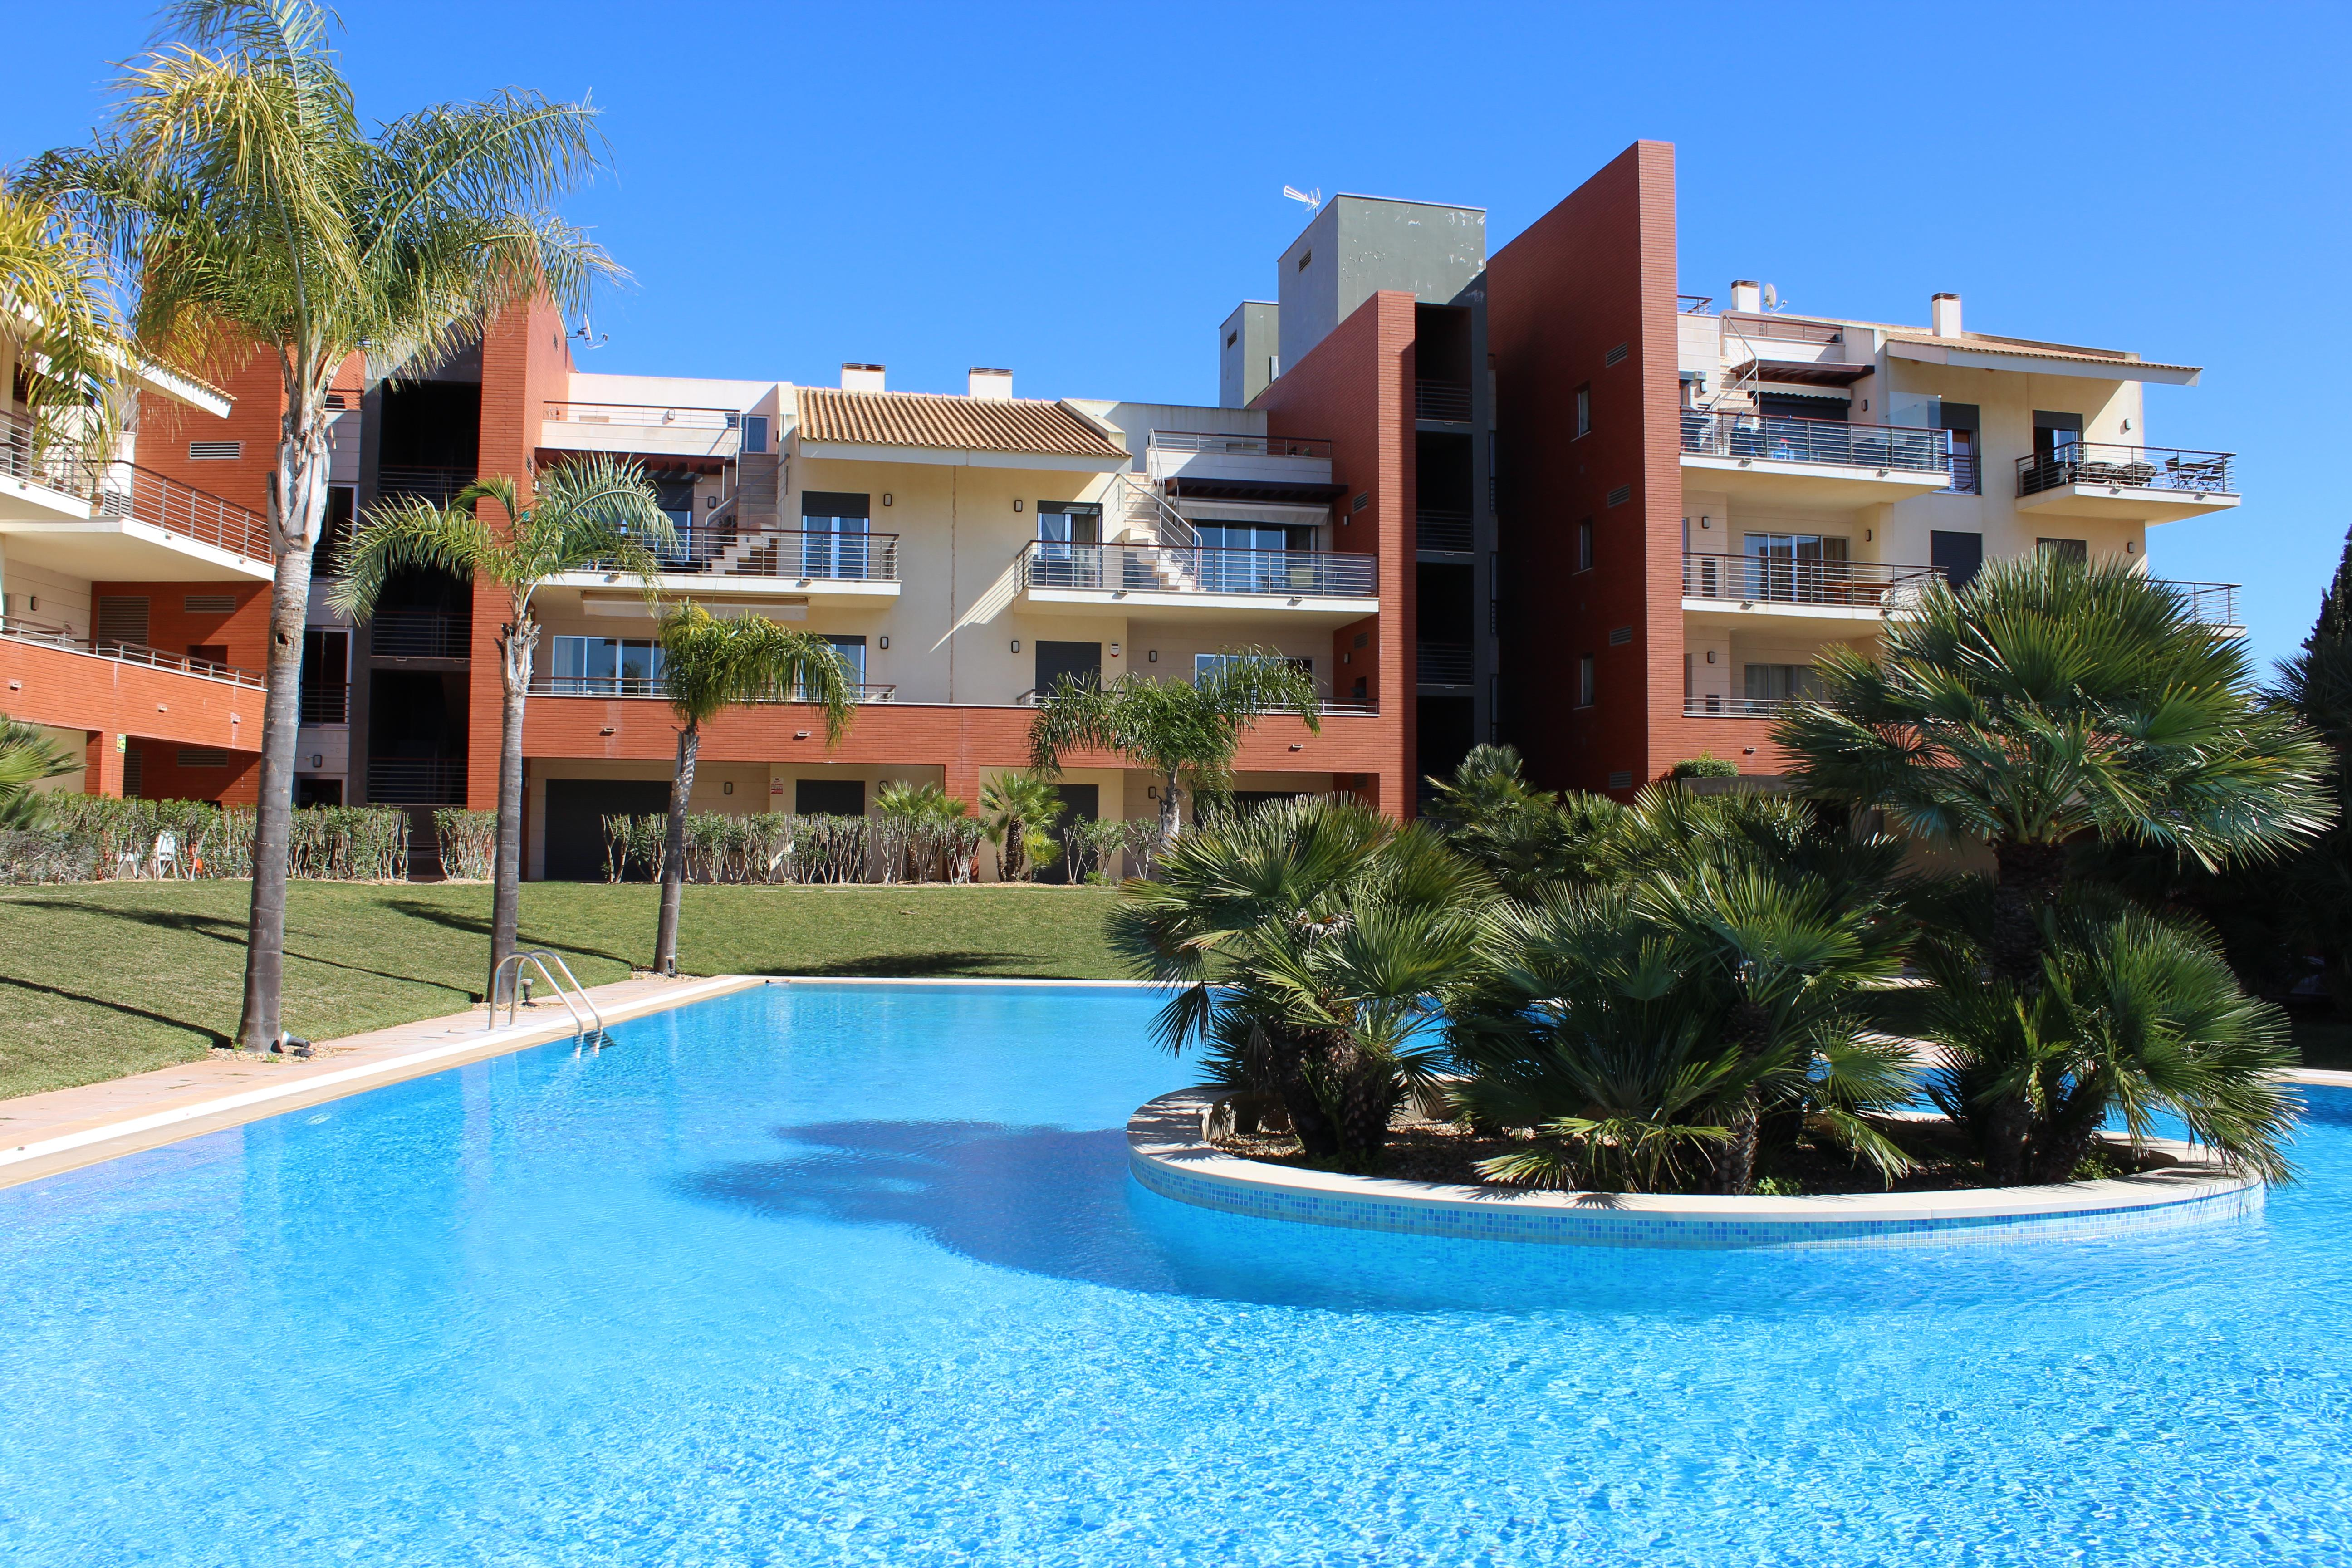 Apartment for Sale at Flat, 3 bedrooms, for Sale Loule, Algarve 8125-426 Portugal